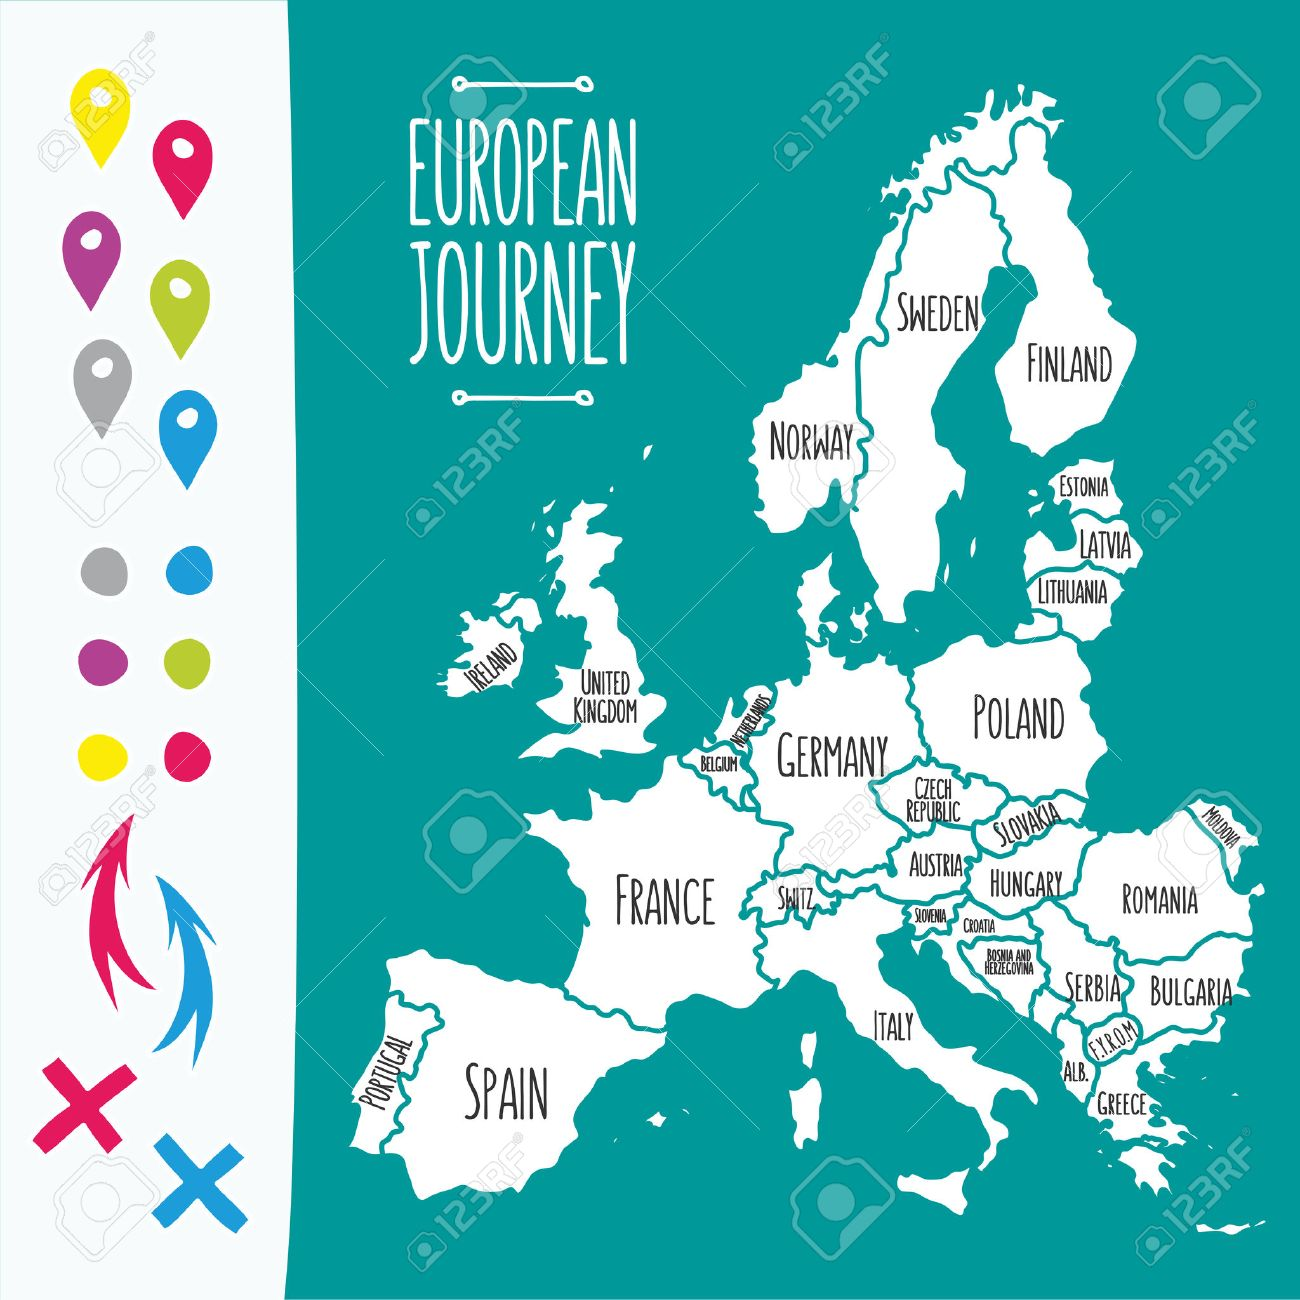 Vintage Hand Drawn Europe Travel Map With Pins Vector Illustration – Travel Maps Europe